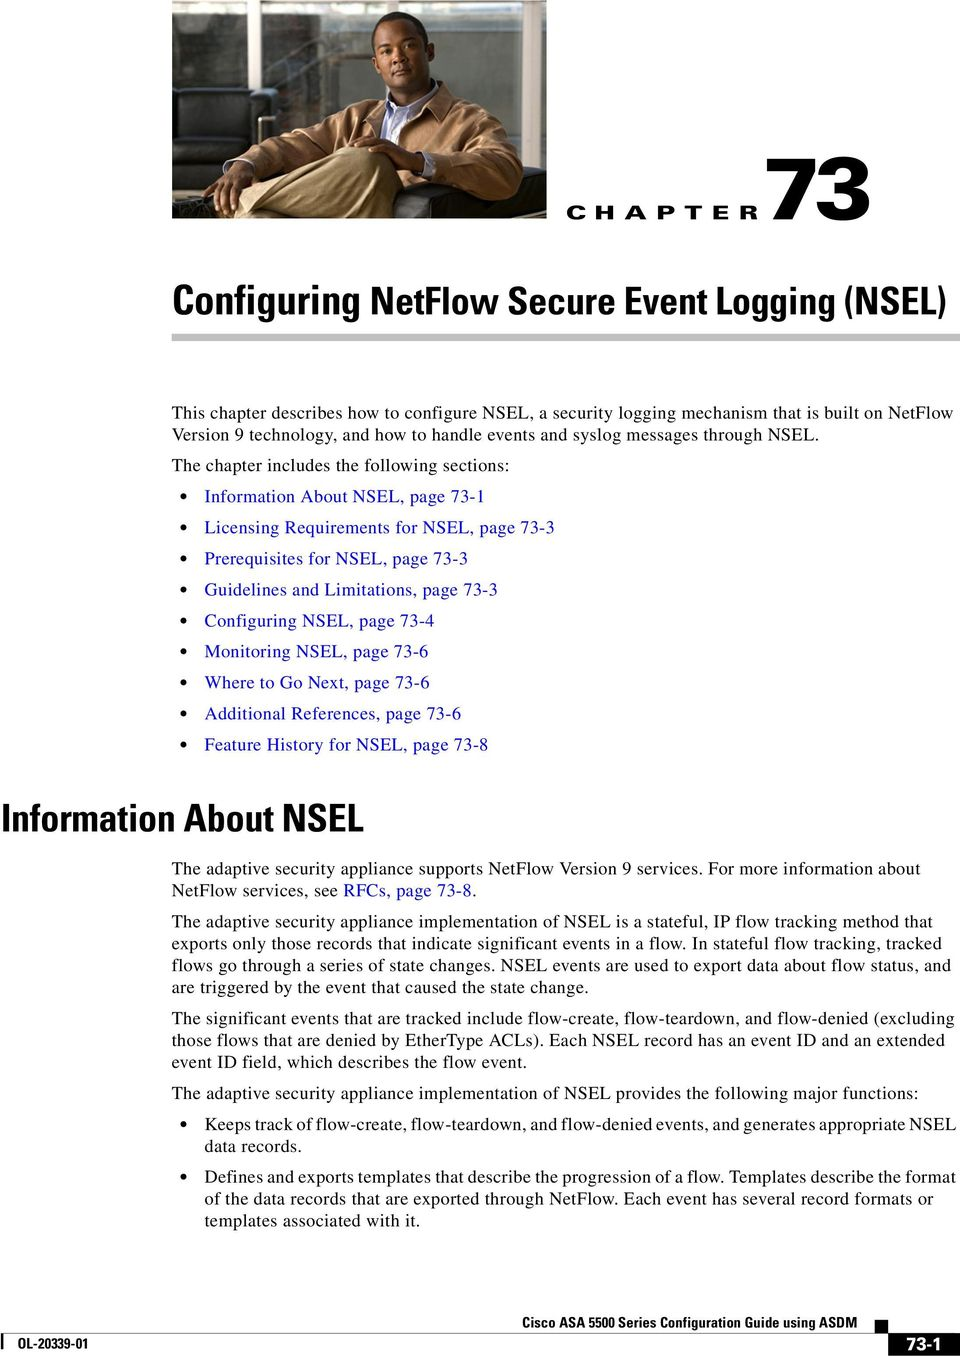 Configuring NSEL, page 73-4 Monitoring NSEL, page 73-6 Where to Go Next, page 73-6 Additional References, page 73-6 Feature History for NSEL, page 73-8 Information About NSEL The adaptive security